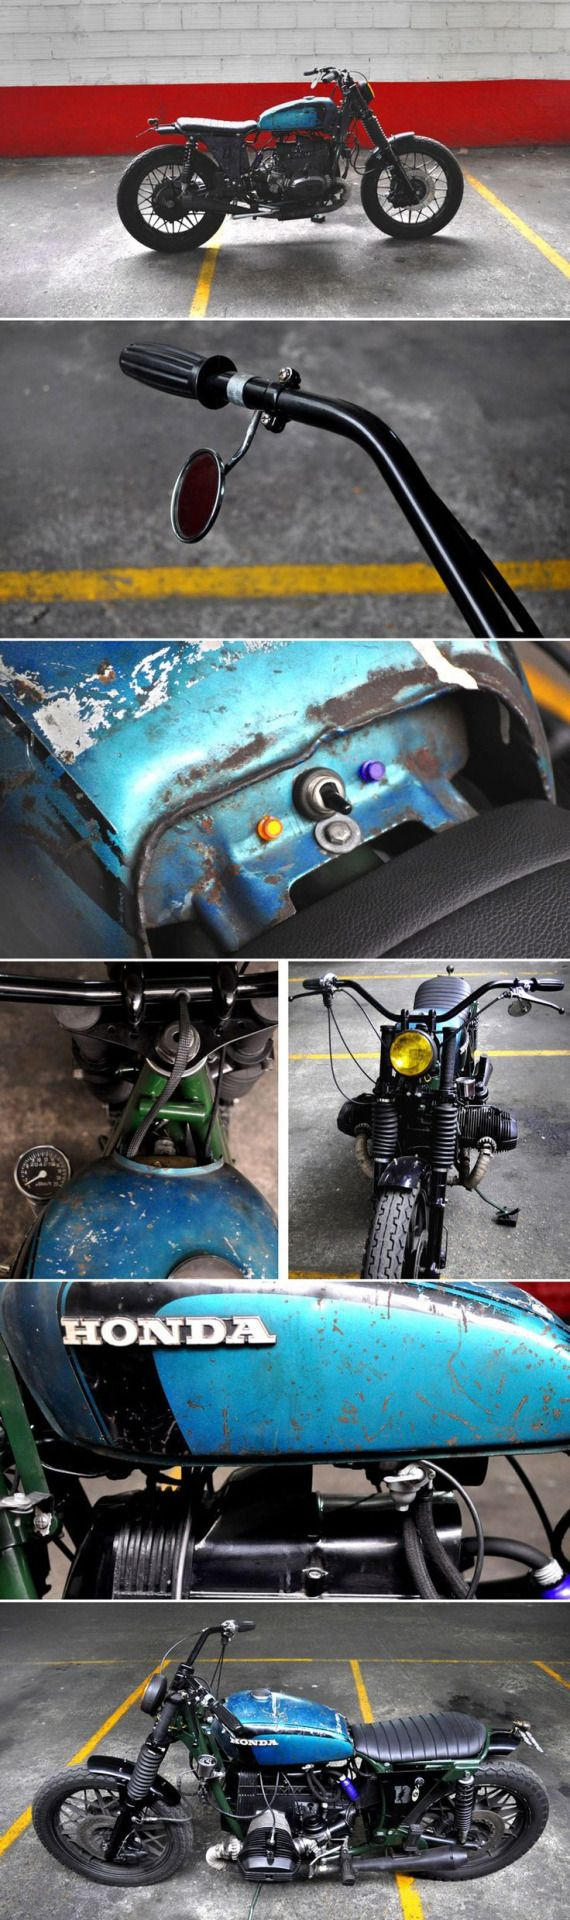 BMW Green Hornet with a Honda tank by Blitz Motorcycles